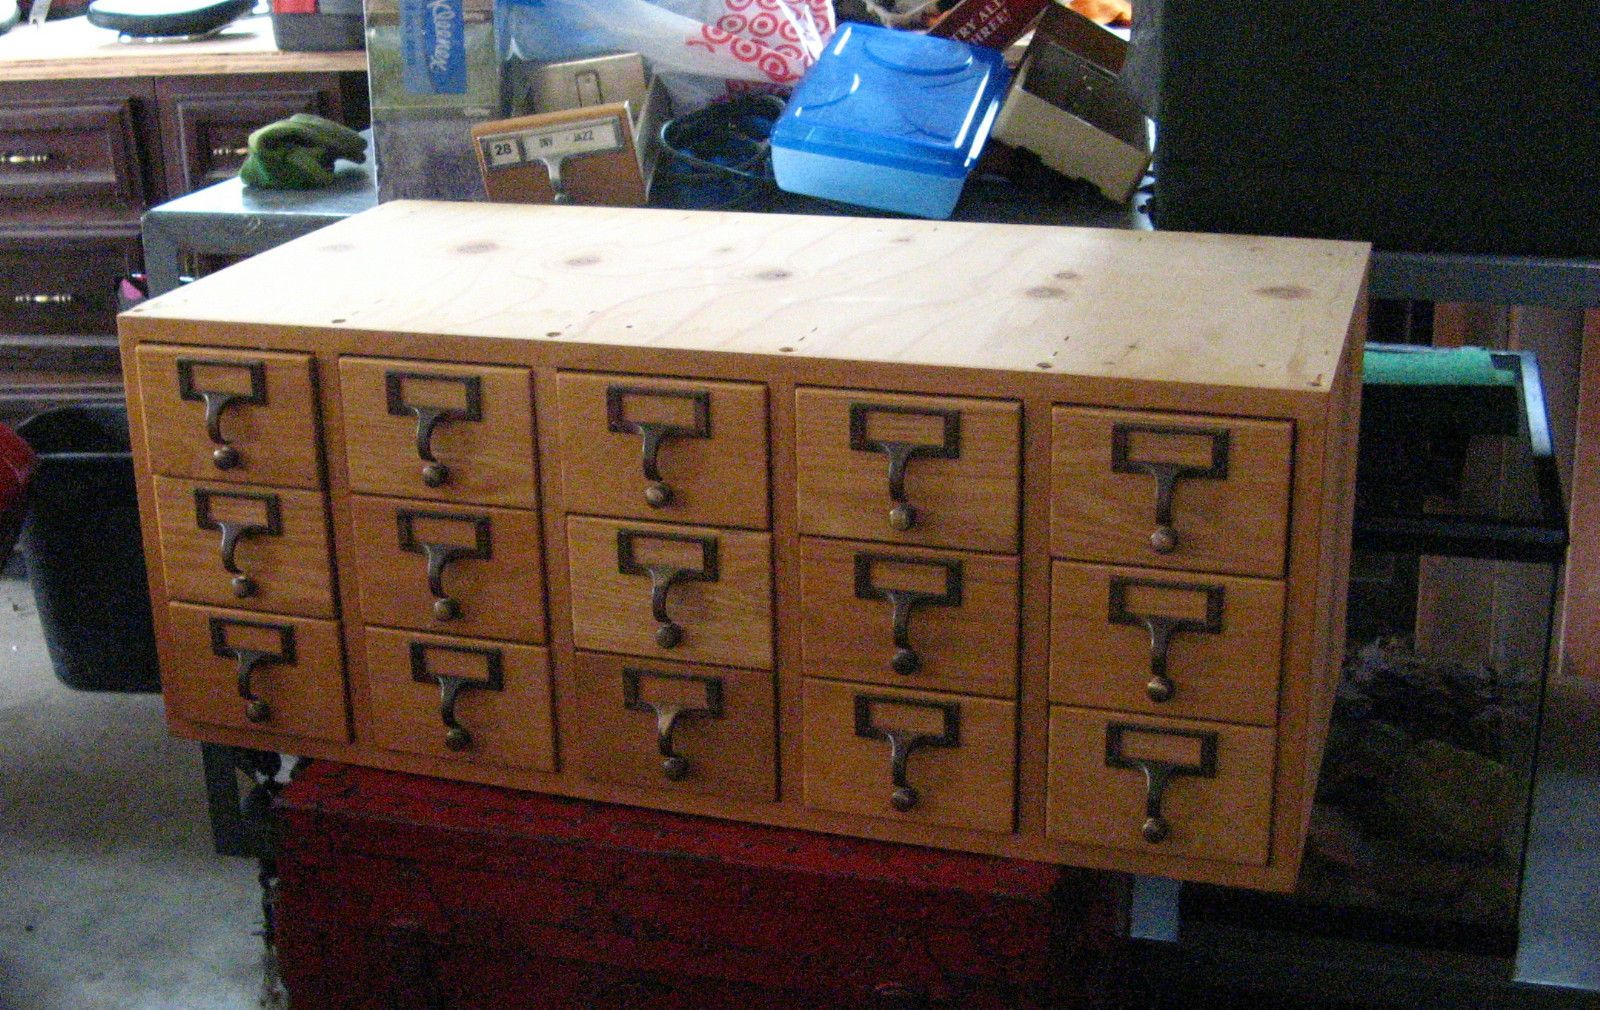 Details About Vintage Library 3x5 Quot Index Card Catalog 15